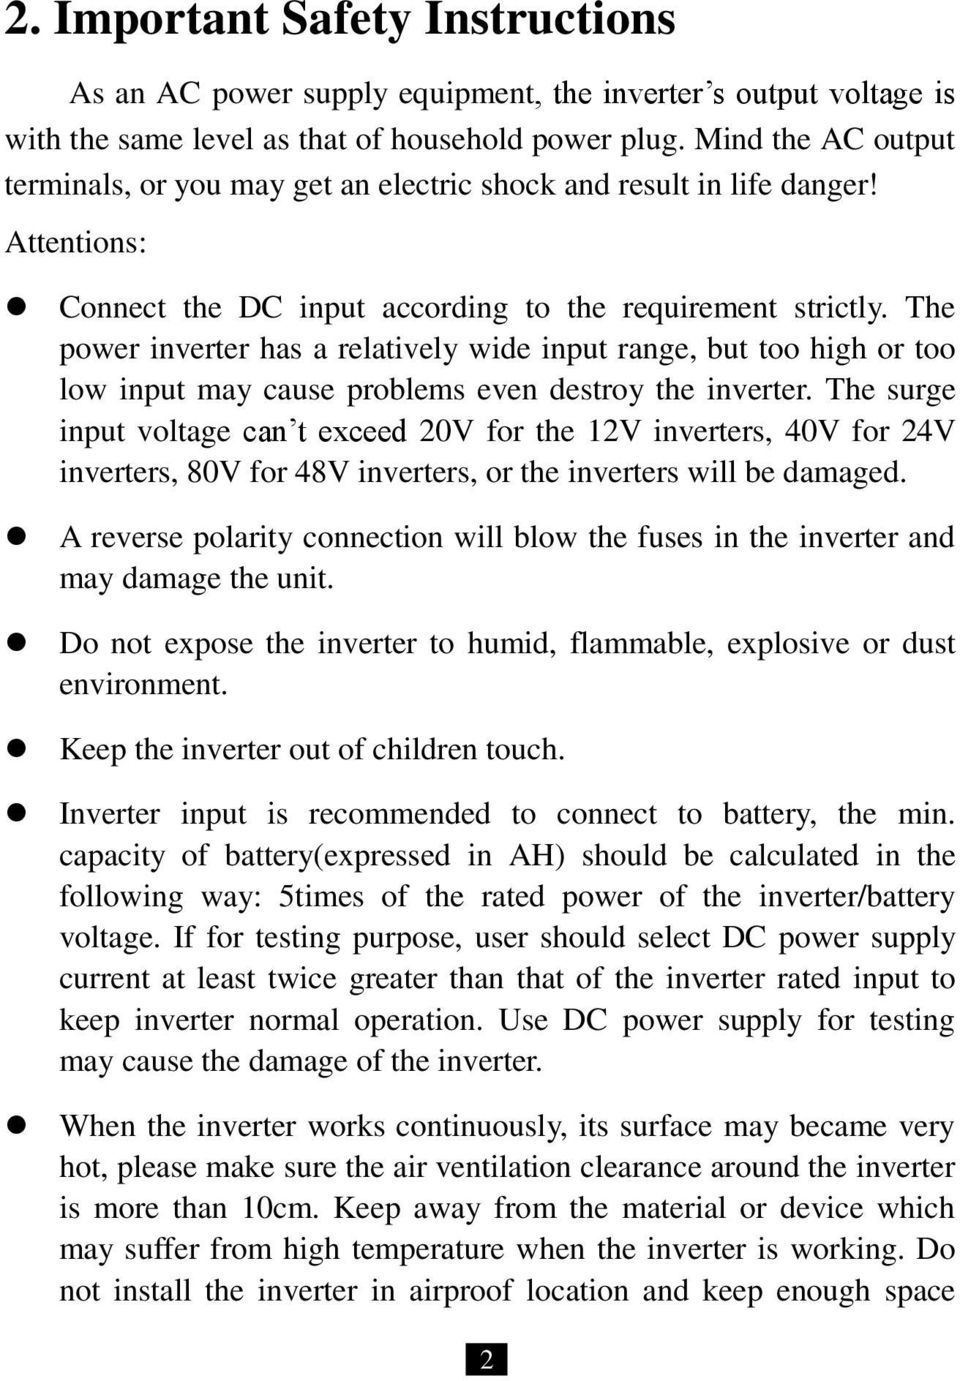 The power inverter has a relatively wide input range, but too high or too low input may cause problems even destroy the inverter.